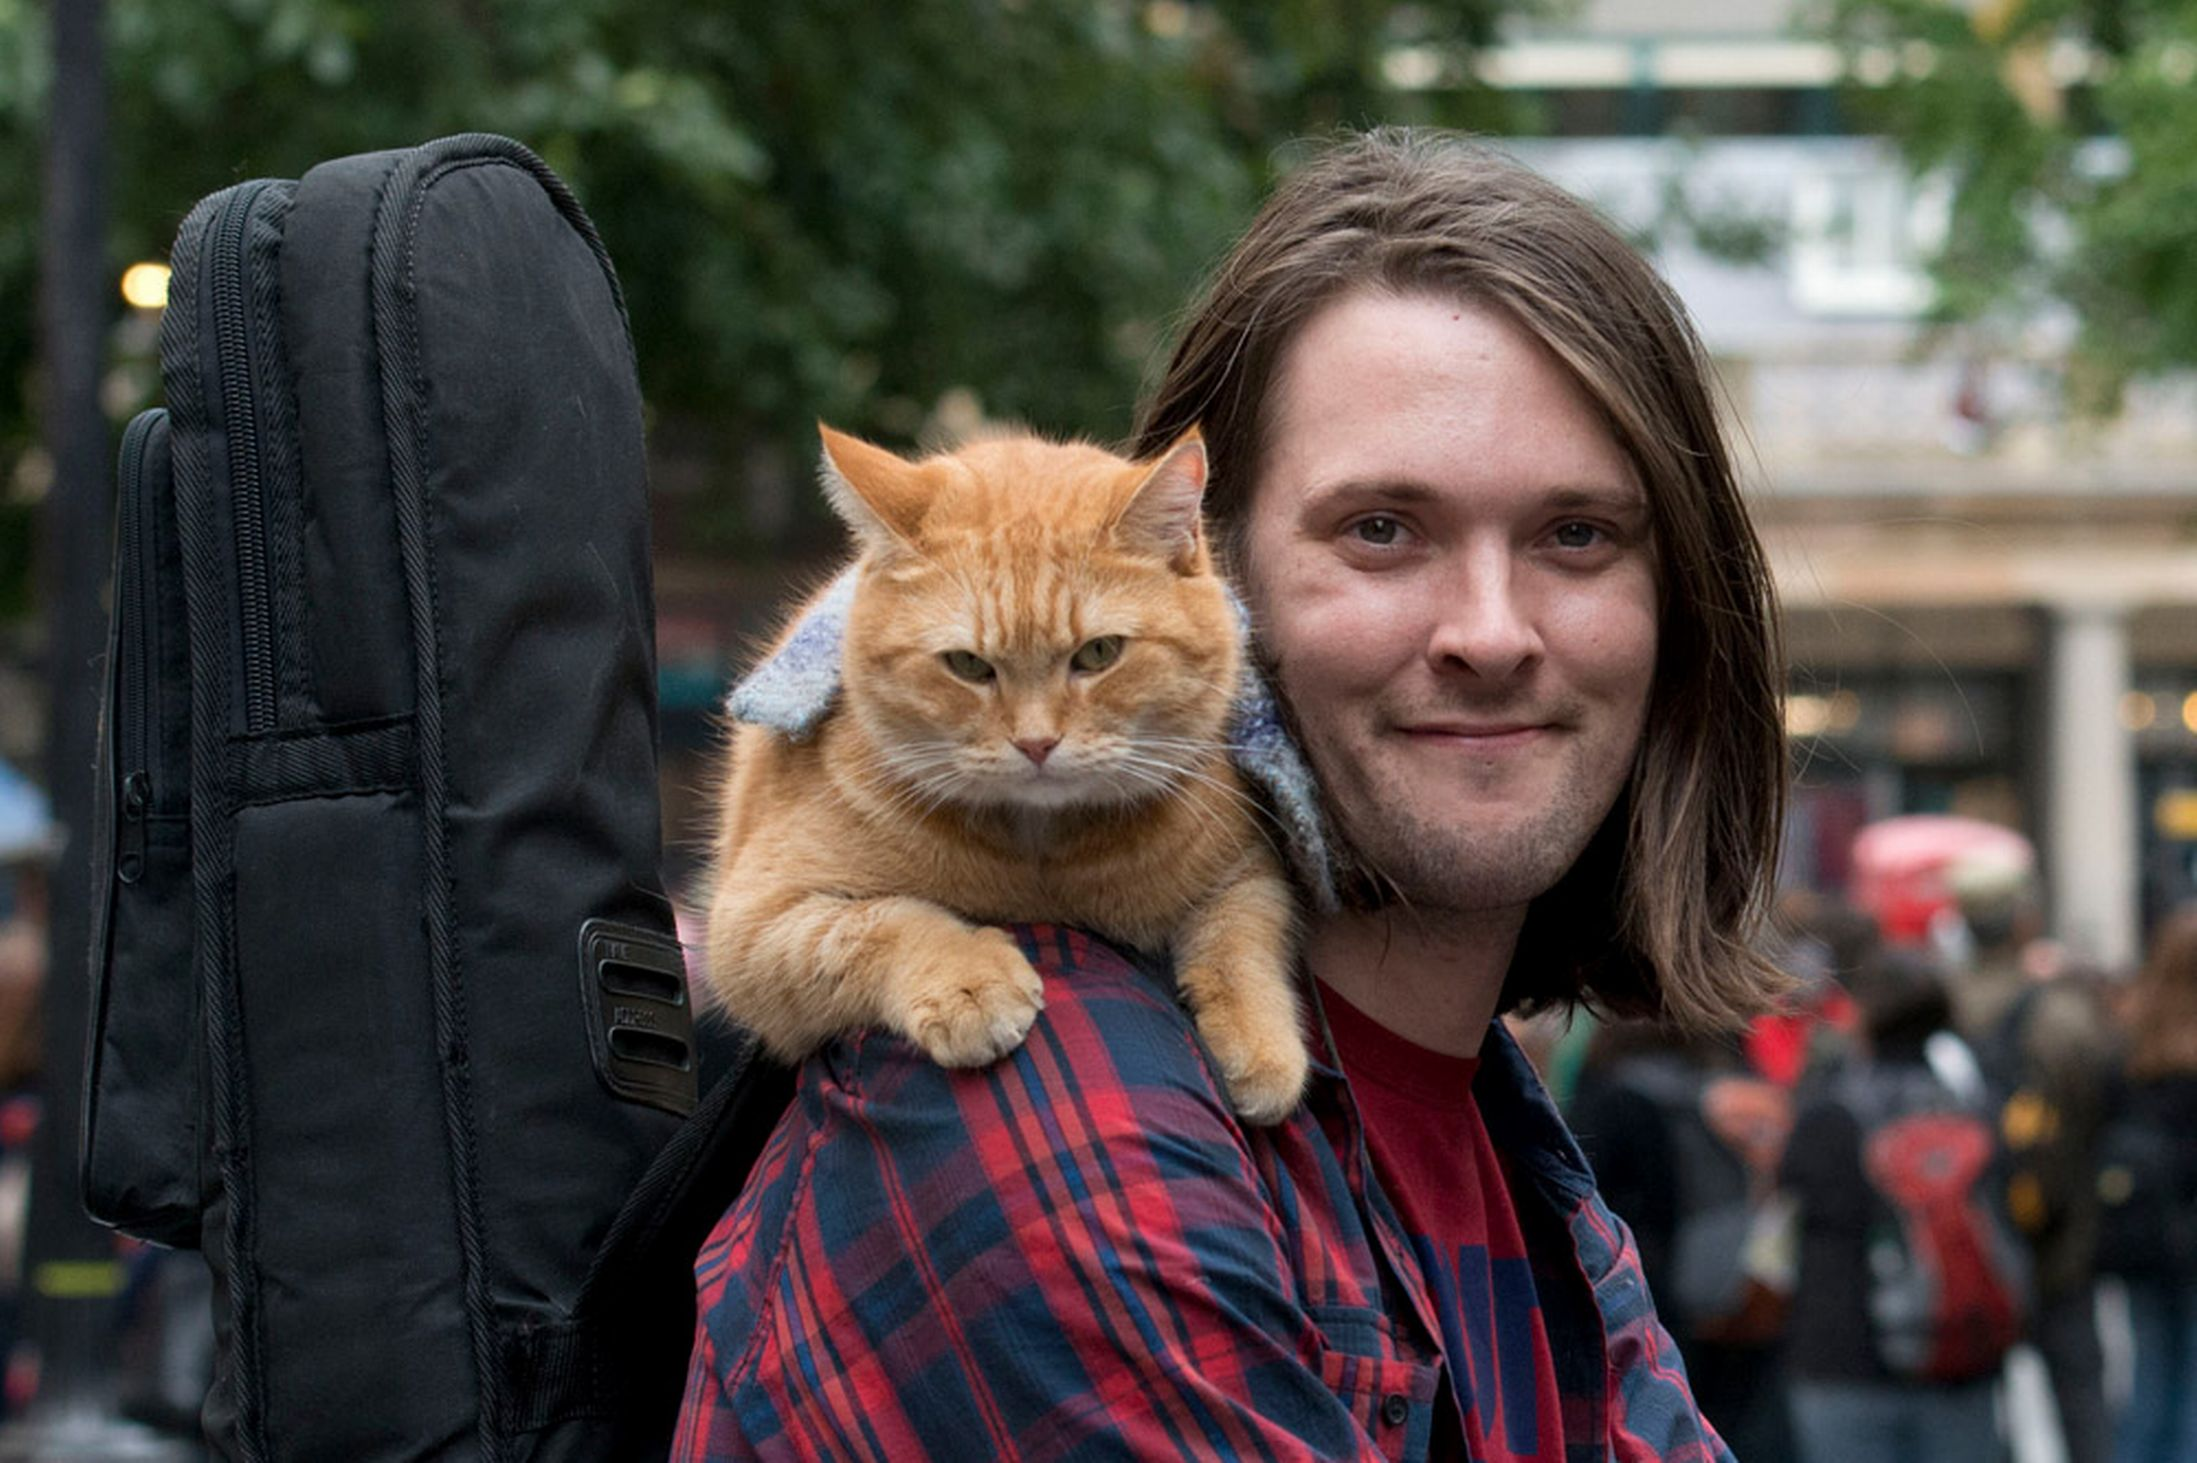 20150302021621-James-Bowen-Street-Cat-Bob